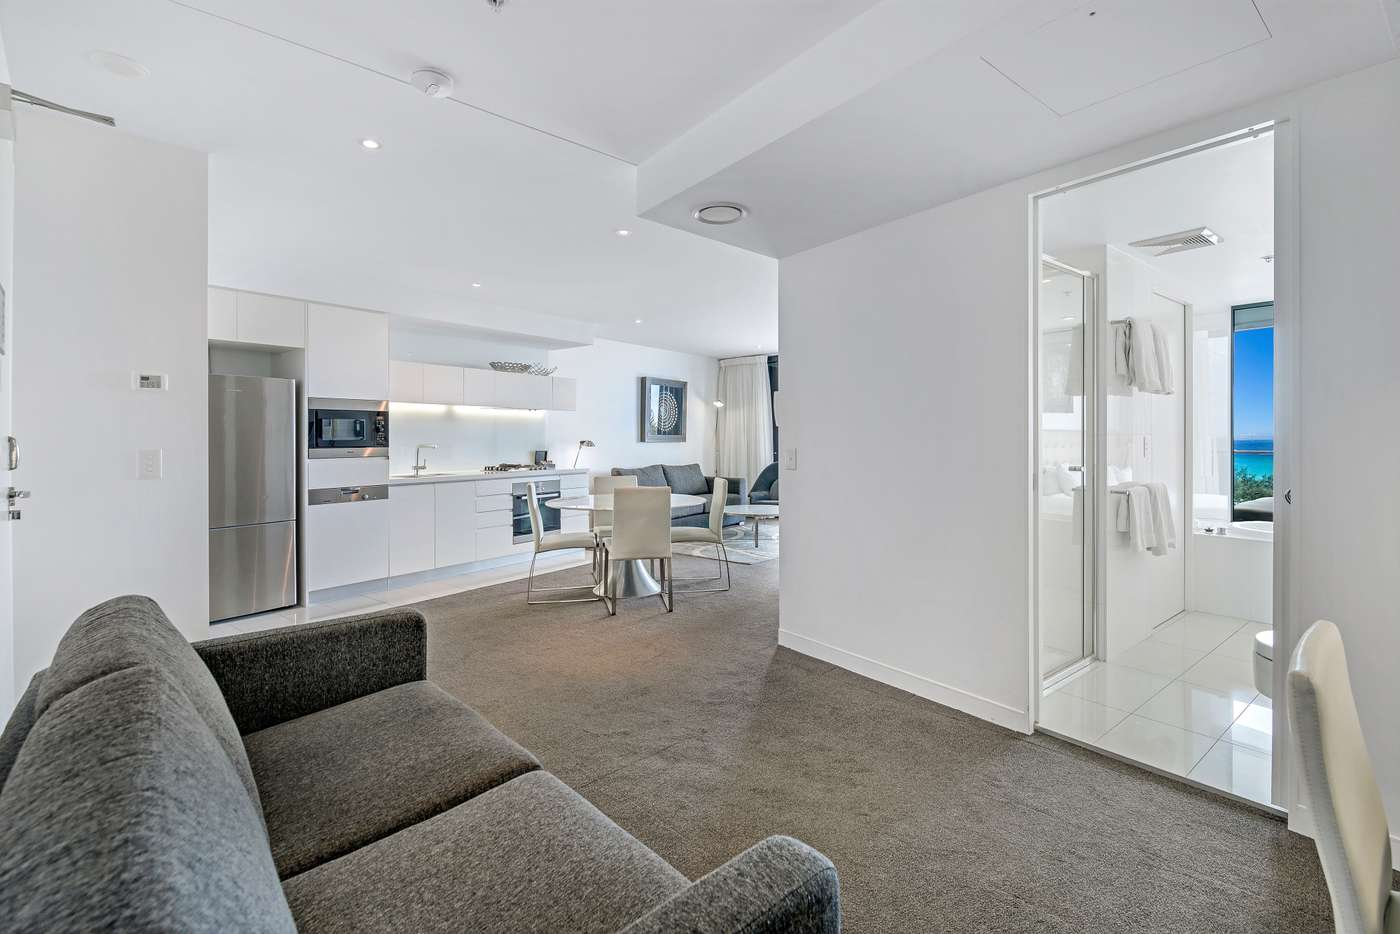 Sixth view of Homely apartment listing, 606/1 'Peppers Broadbeach' Oracle Boulevard, Broadbeach QLD 4218